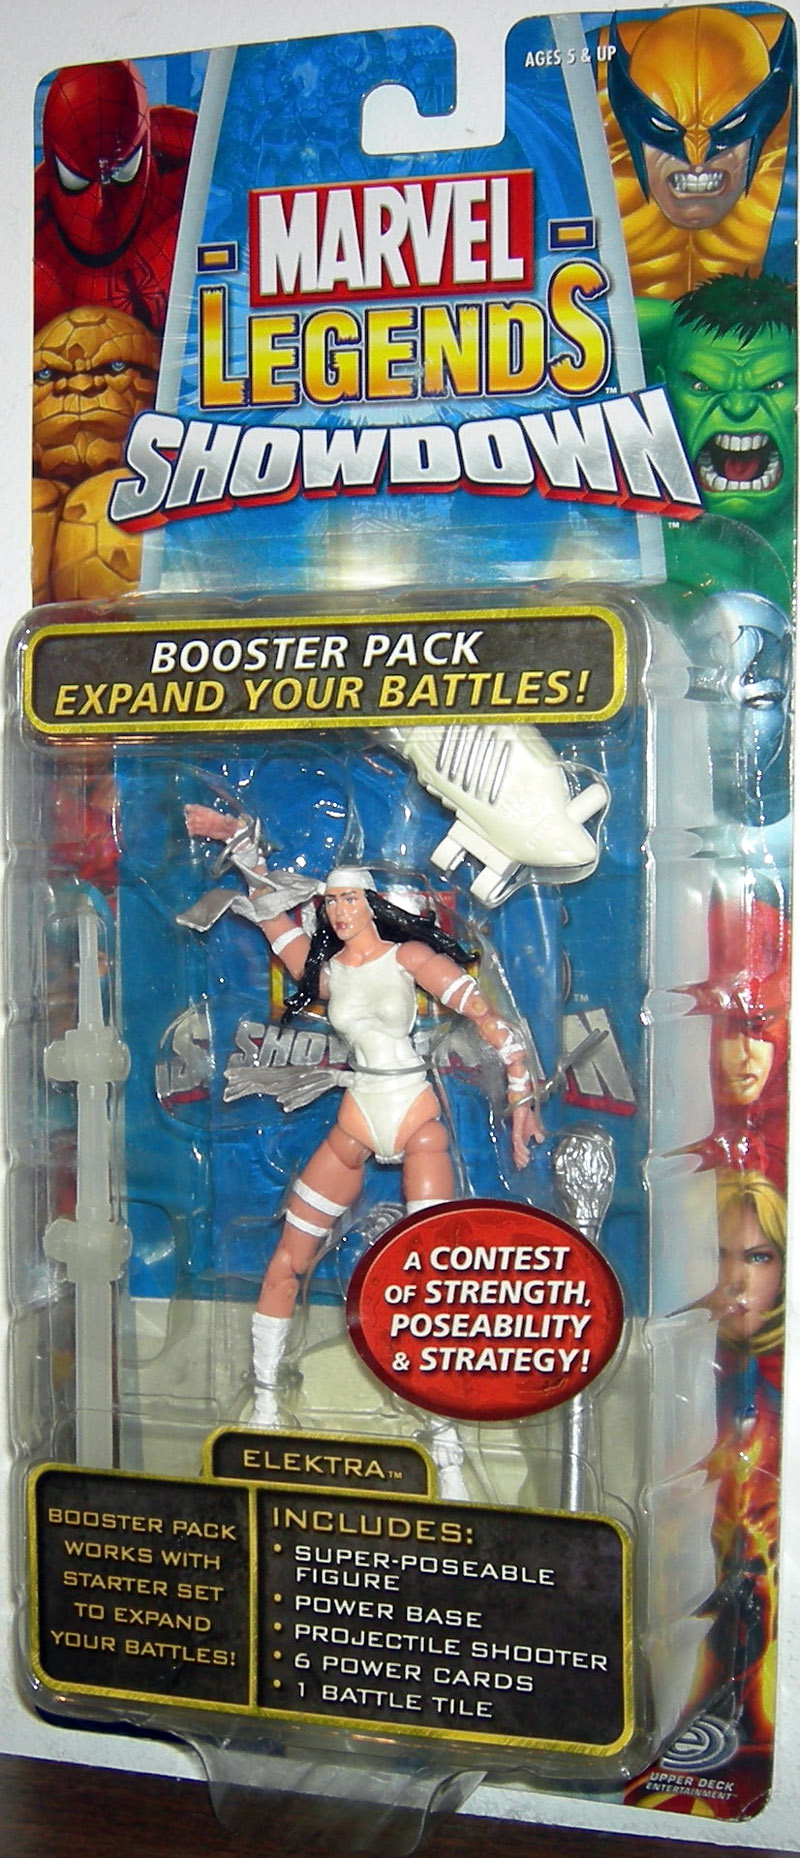 Elektra (Marvel Legends Showdown, white costume)